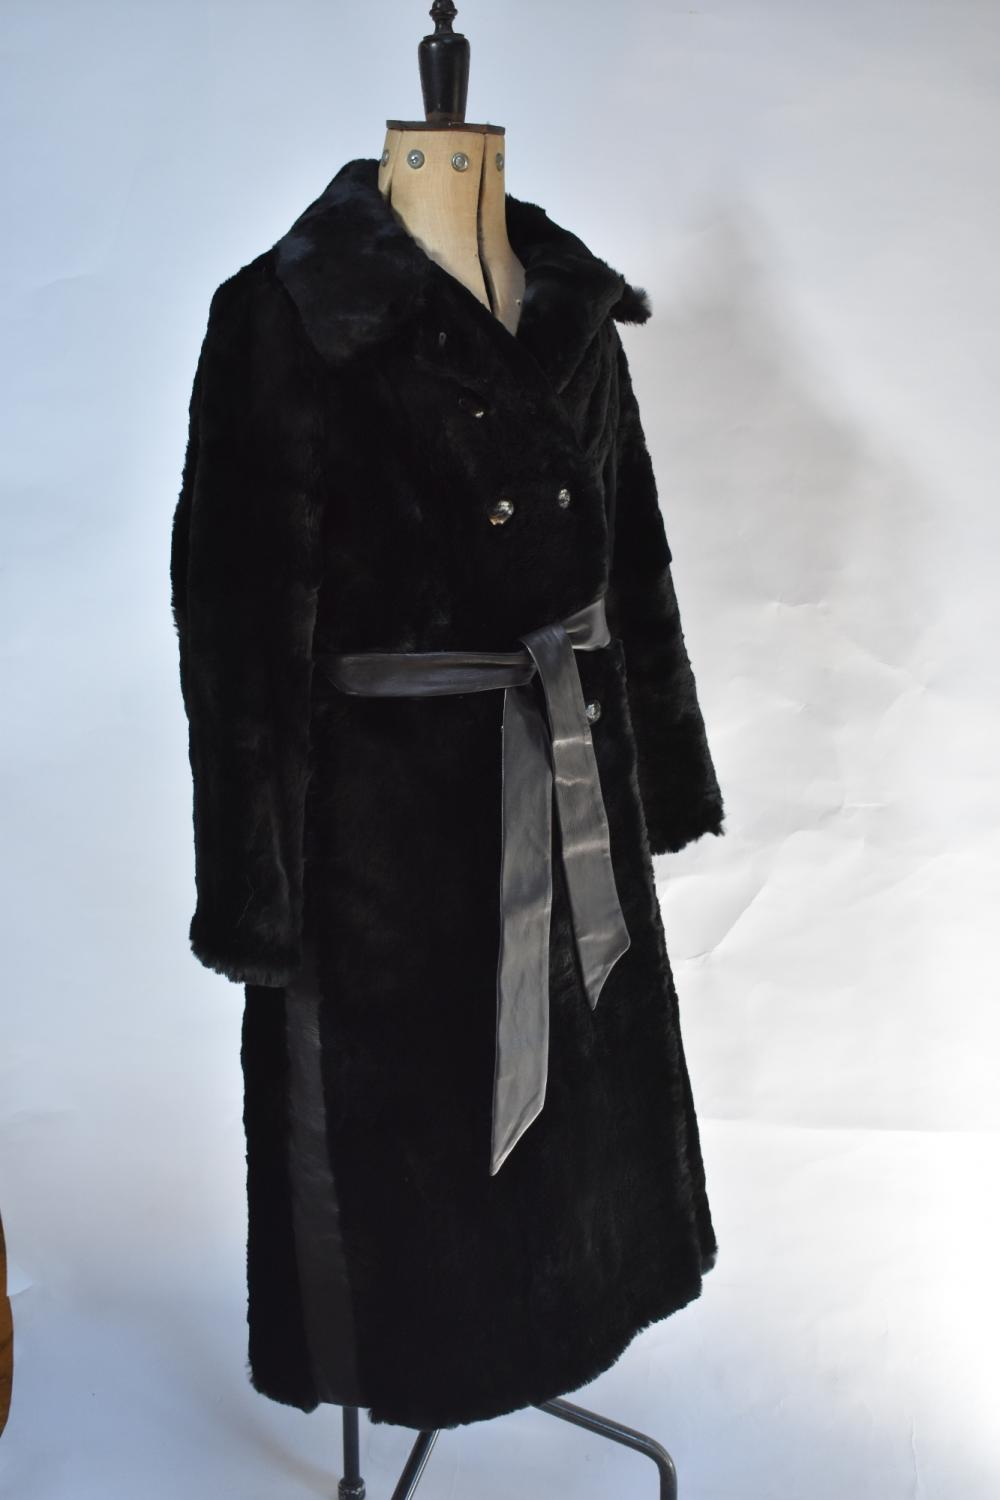 Lady's black shearling fur coat